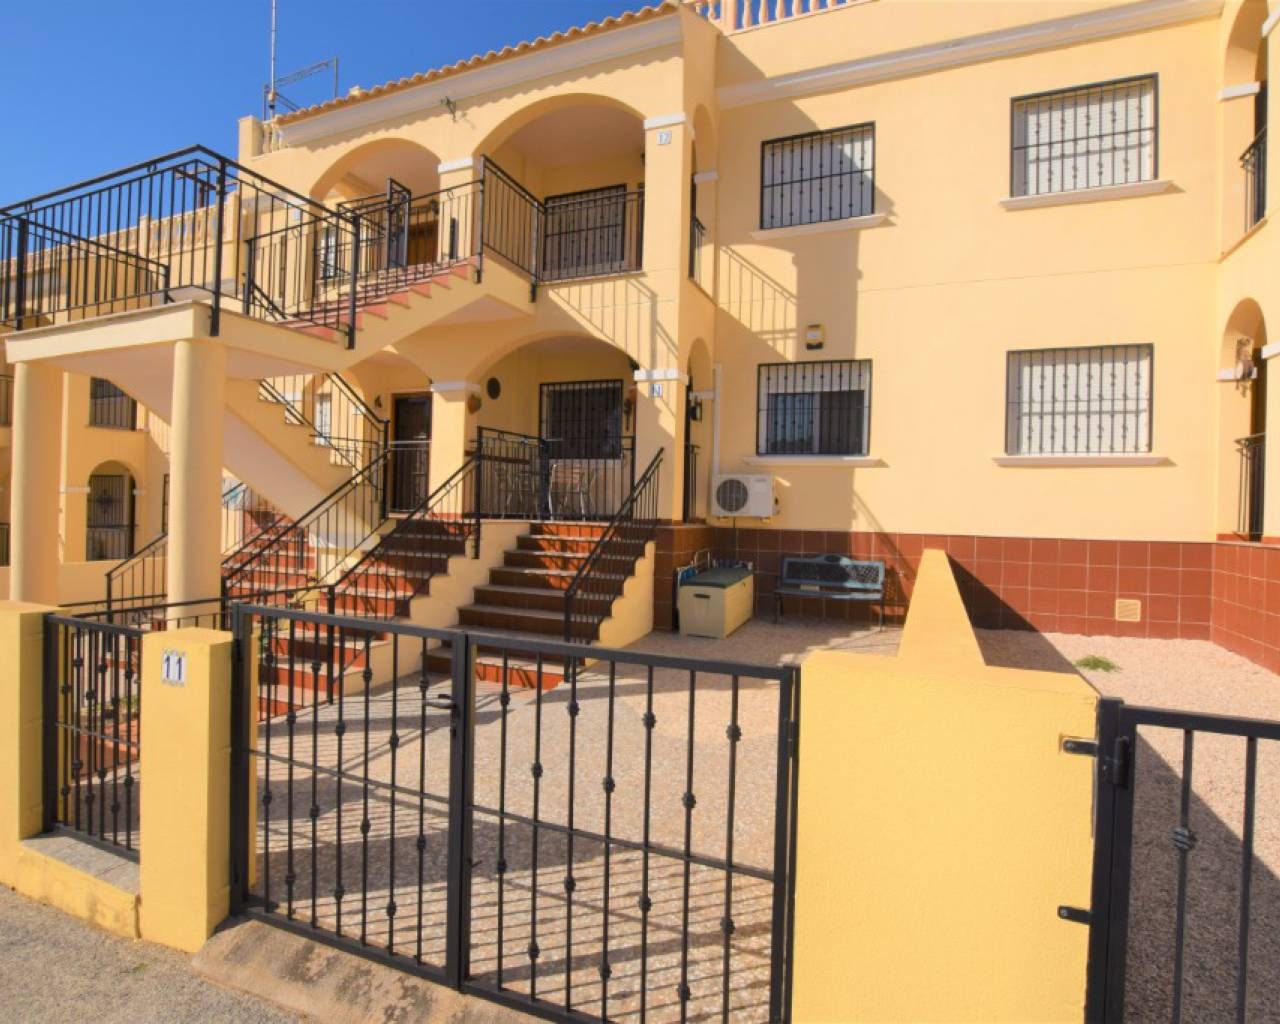 Apartment - Sale - Alicante - Algorfa